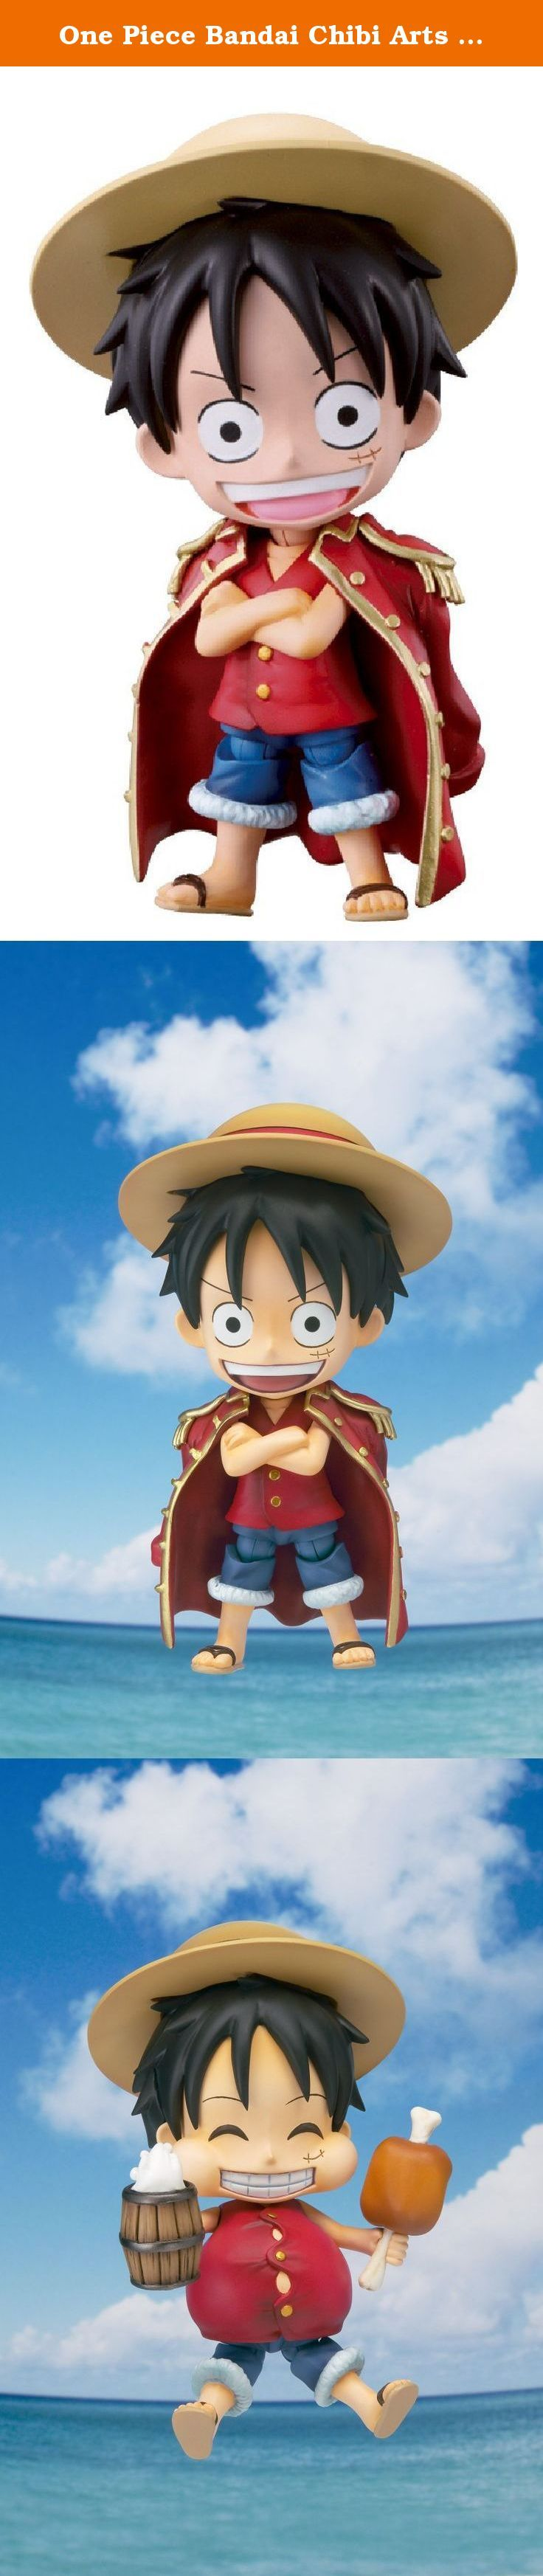 One Piece Bandai Chibi Arts 4 Inch Action Figure Monkey D. Luffy. The main character of One ...